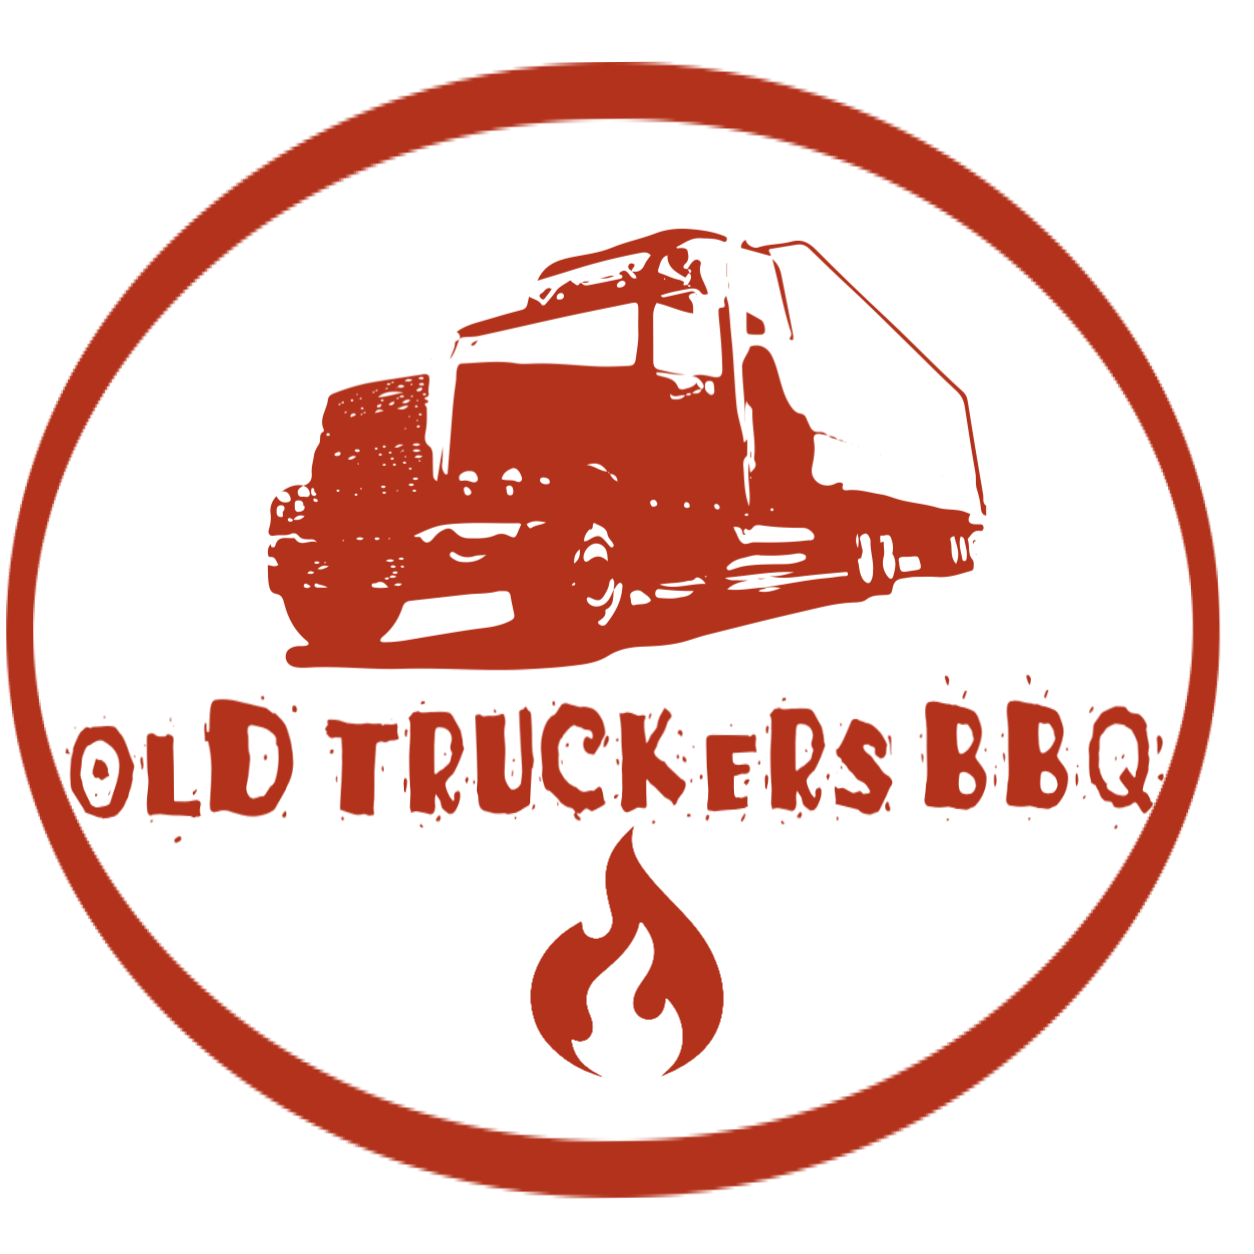 Old Truckers BBQ